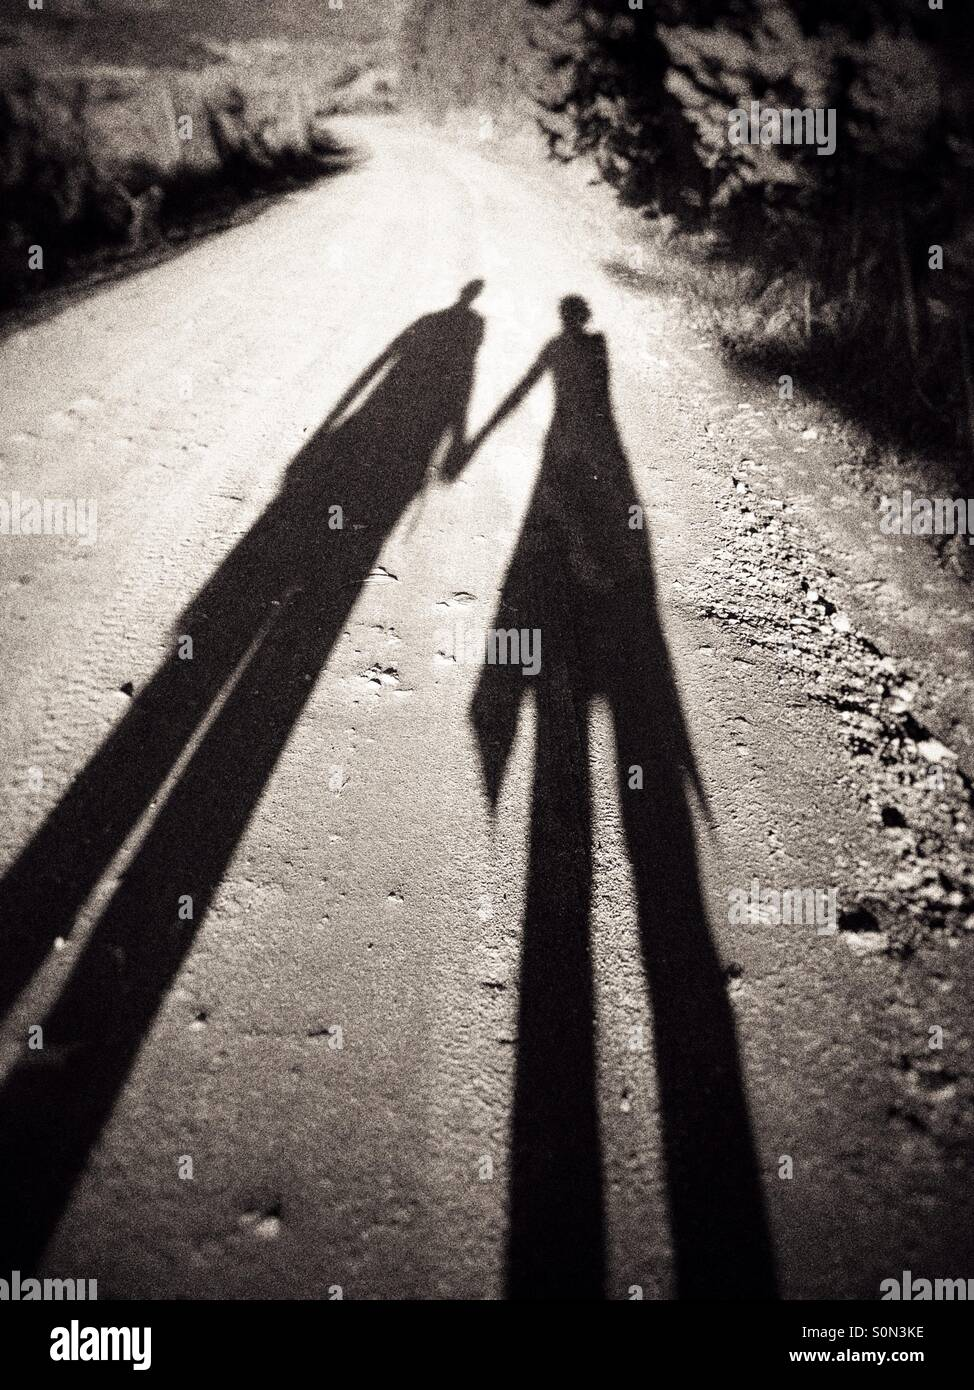 Distorted shadows of two people holding hands Stock Photo  310250514 ... 438153341b